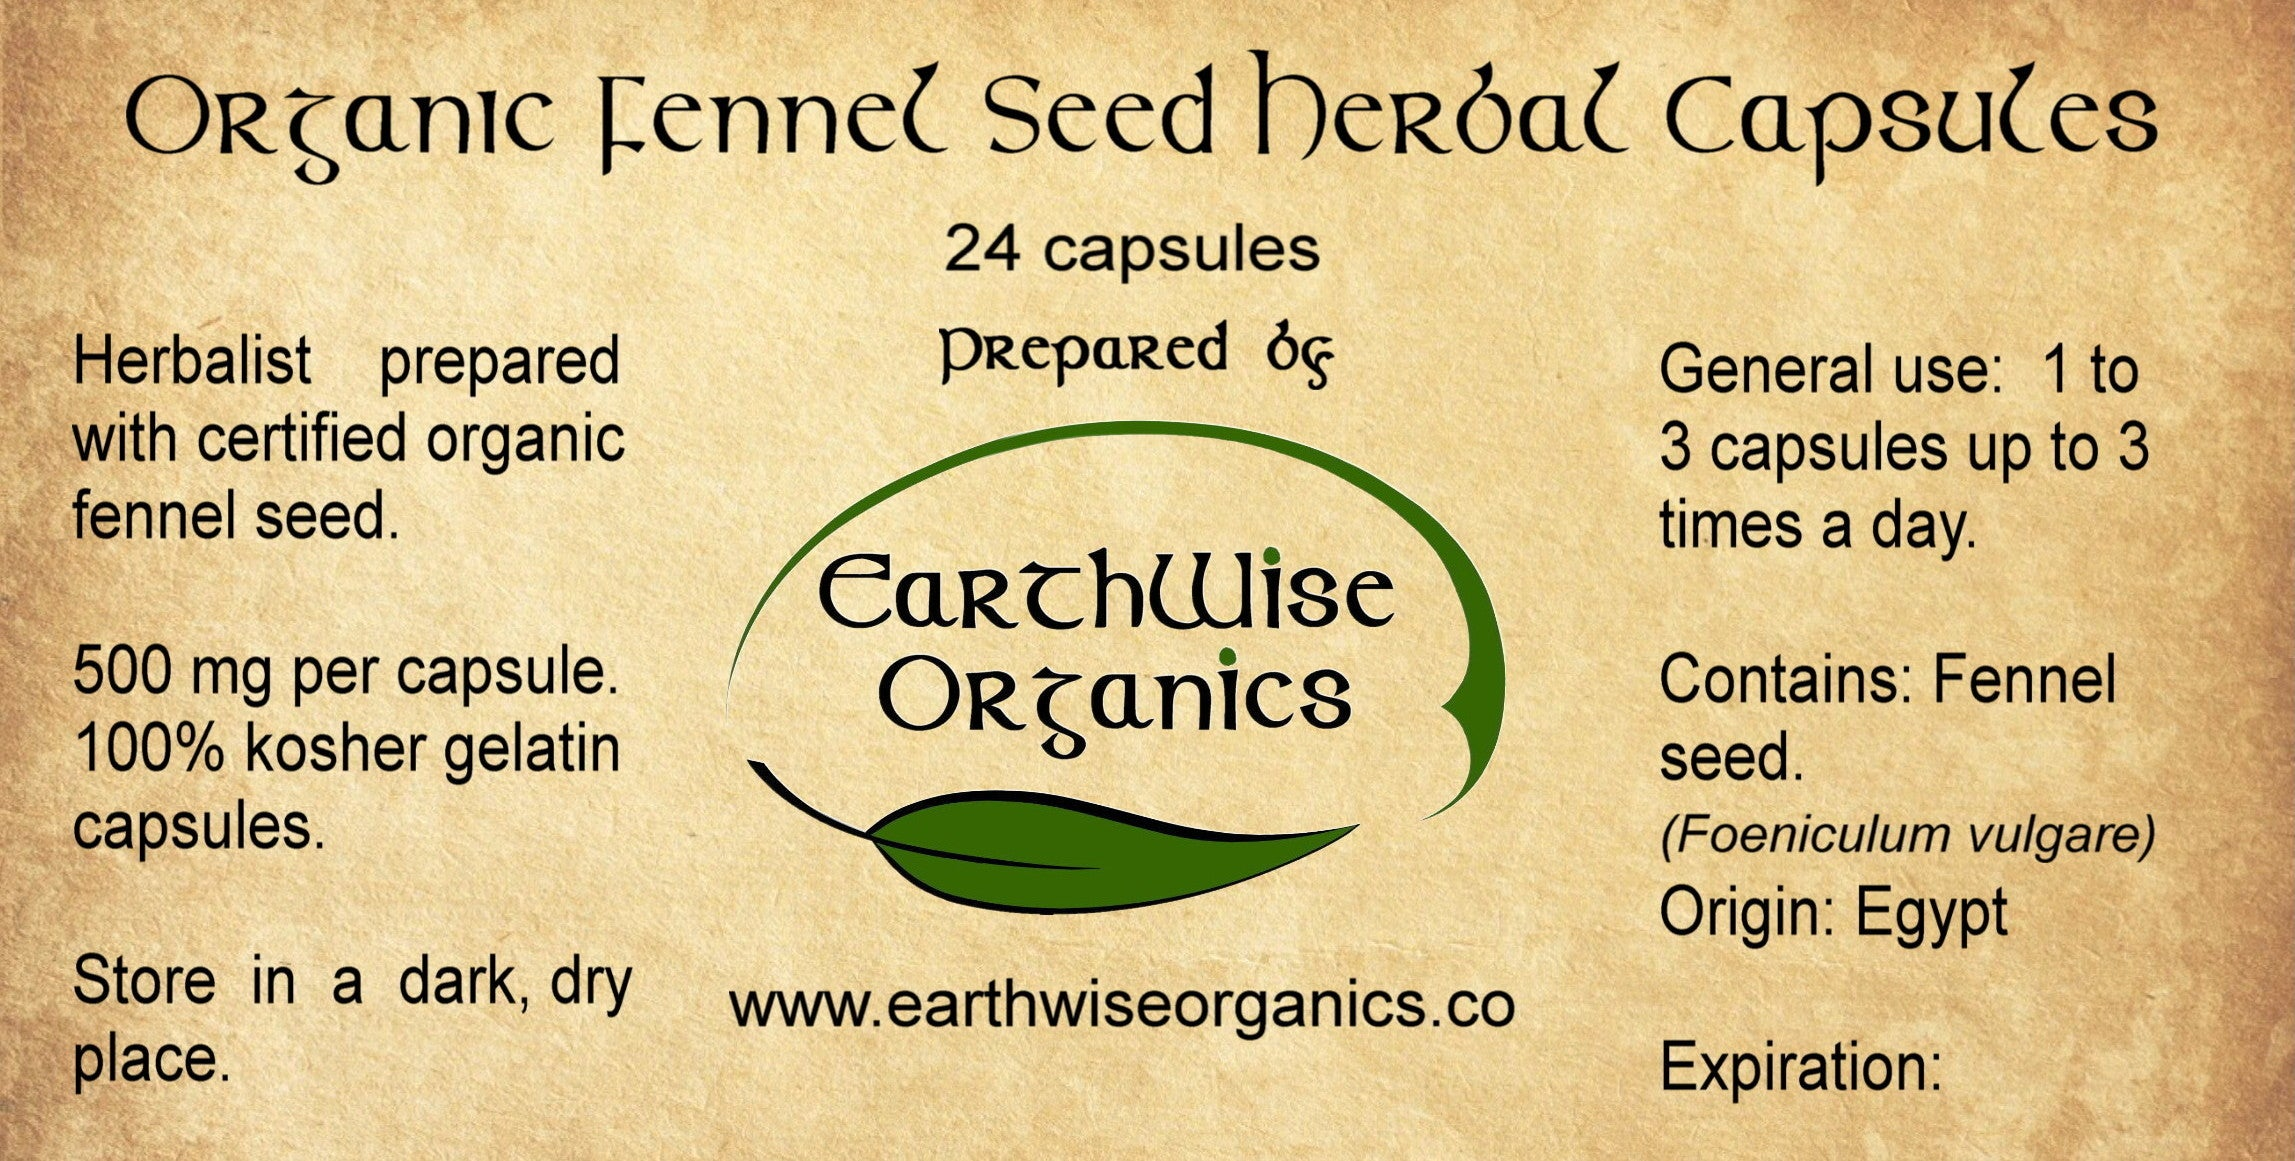 fennel seed organic herbal capsules label